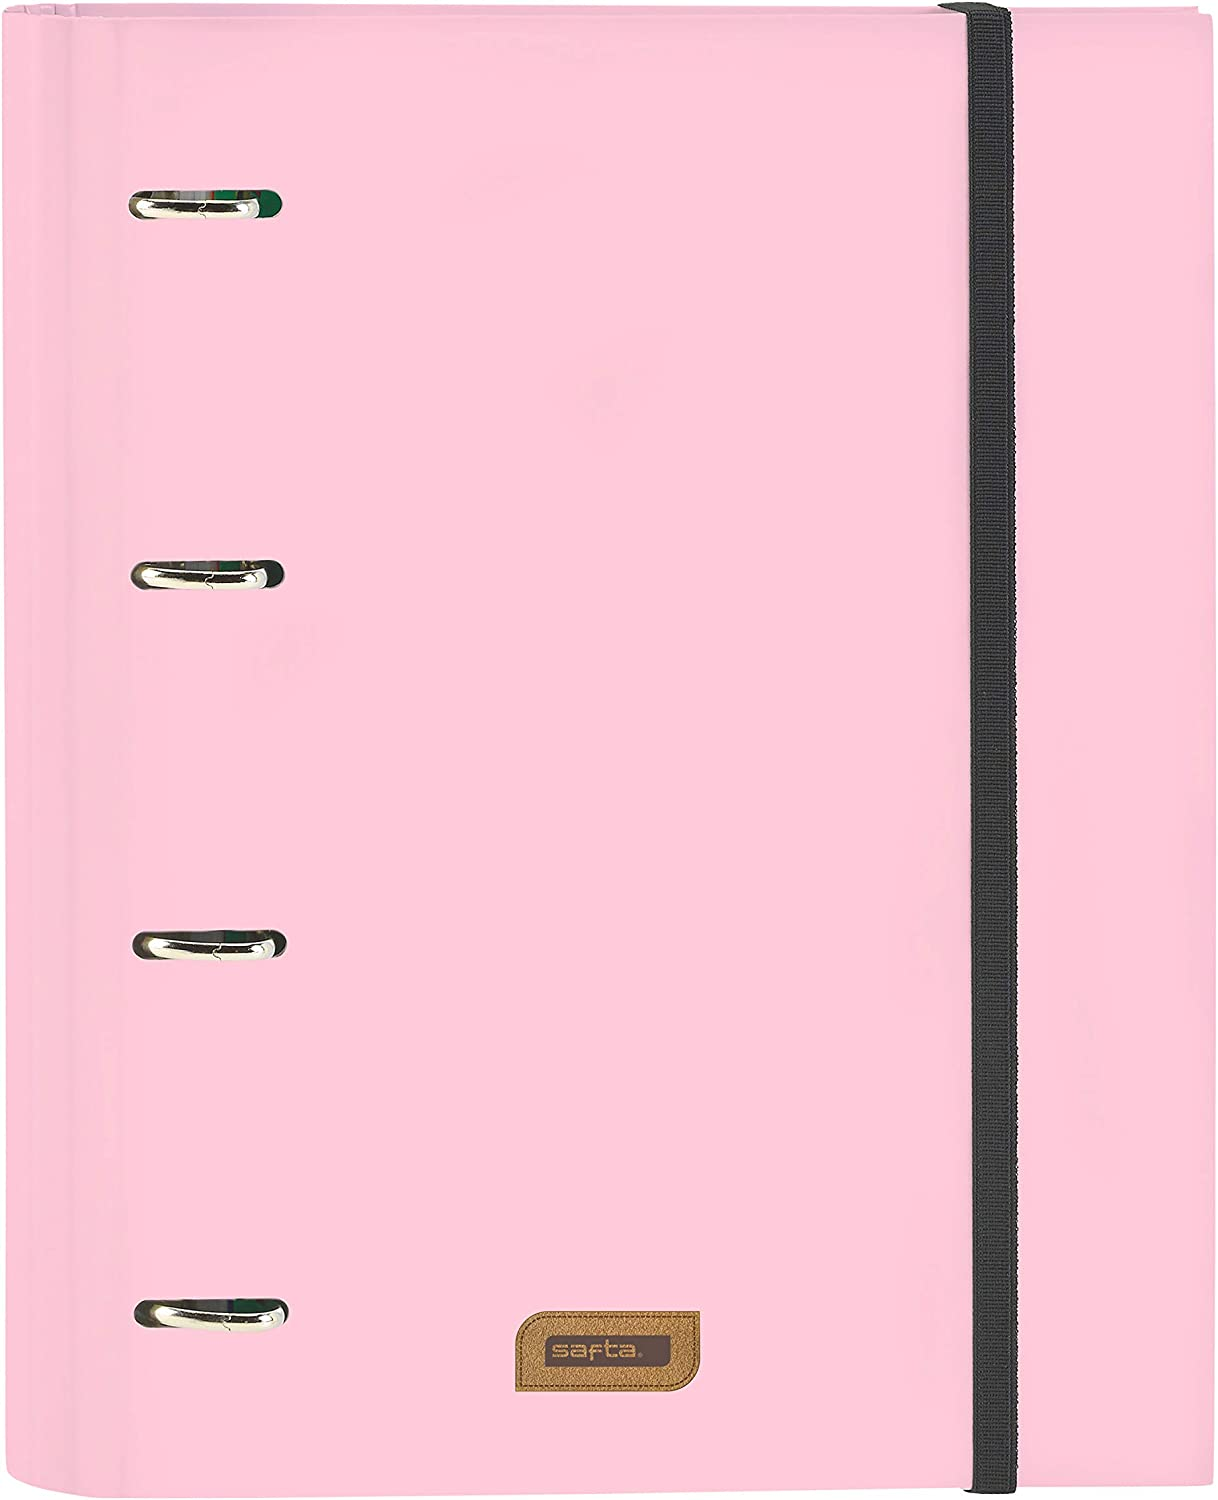 Safta Folder quality assurance 4 Rings 30 mm with x 35 Sheets 100 320 A4 270 Cheap mail order specialty store